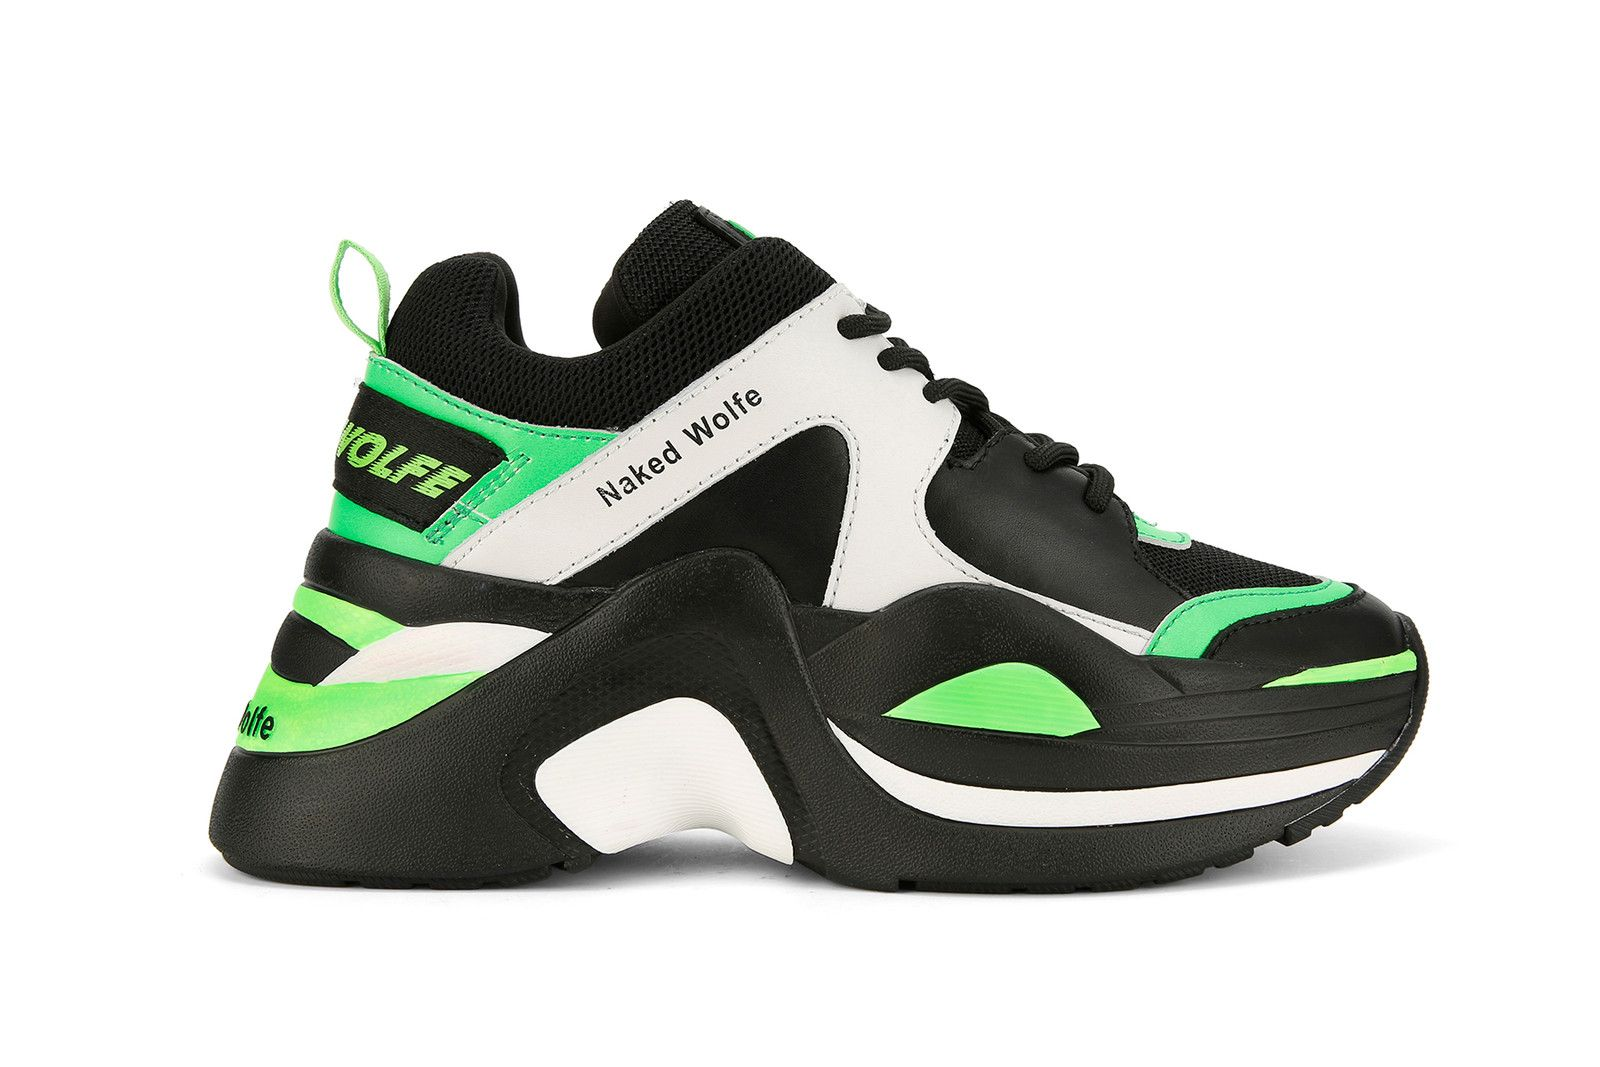 Naked Wolfe Chunky Sneaker Track Neon Green Black White Lookbook ... c0ad5b709e